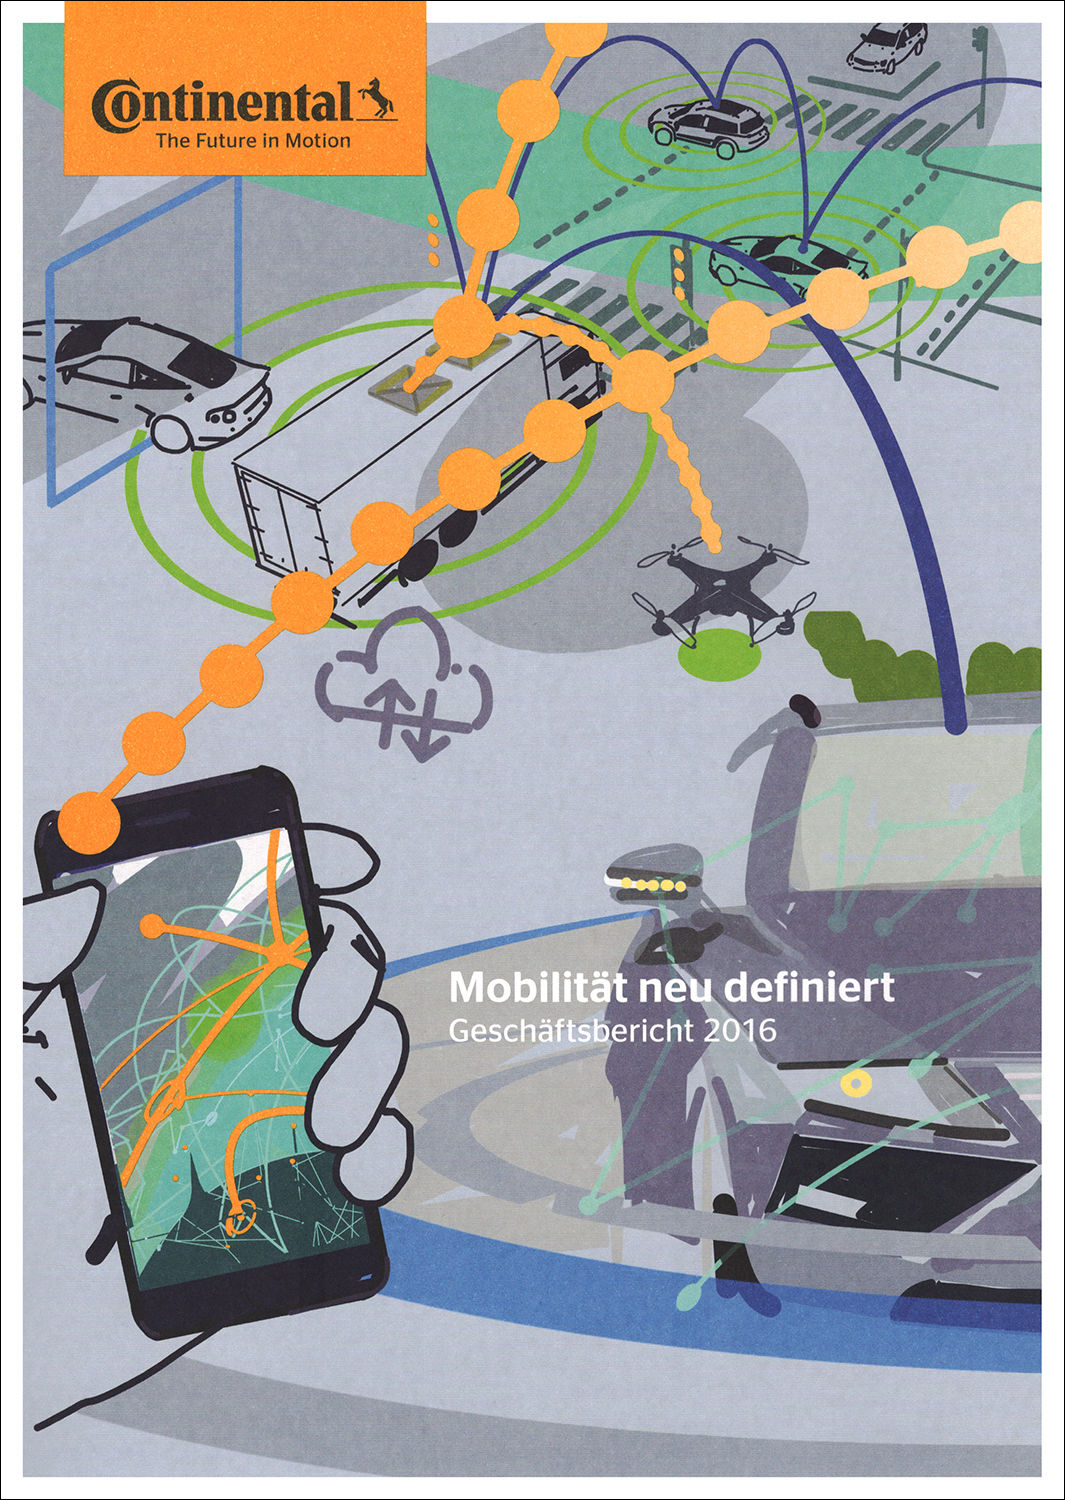 Toby NEILAN c/o 2AGENTEN for CONTINENTAL, ANNUAL REPORT